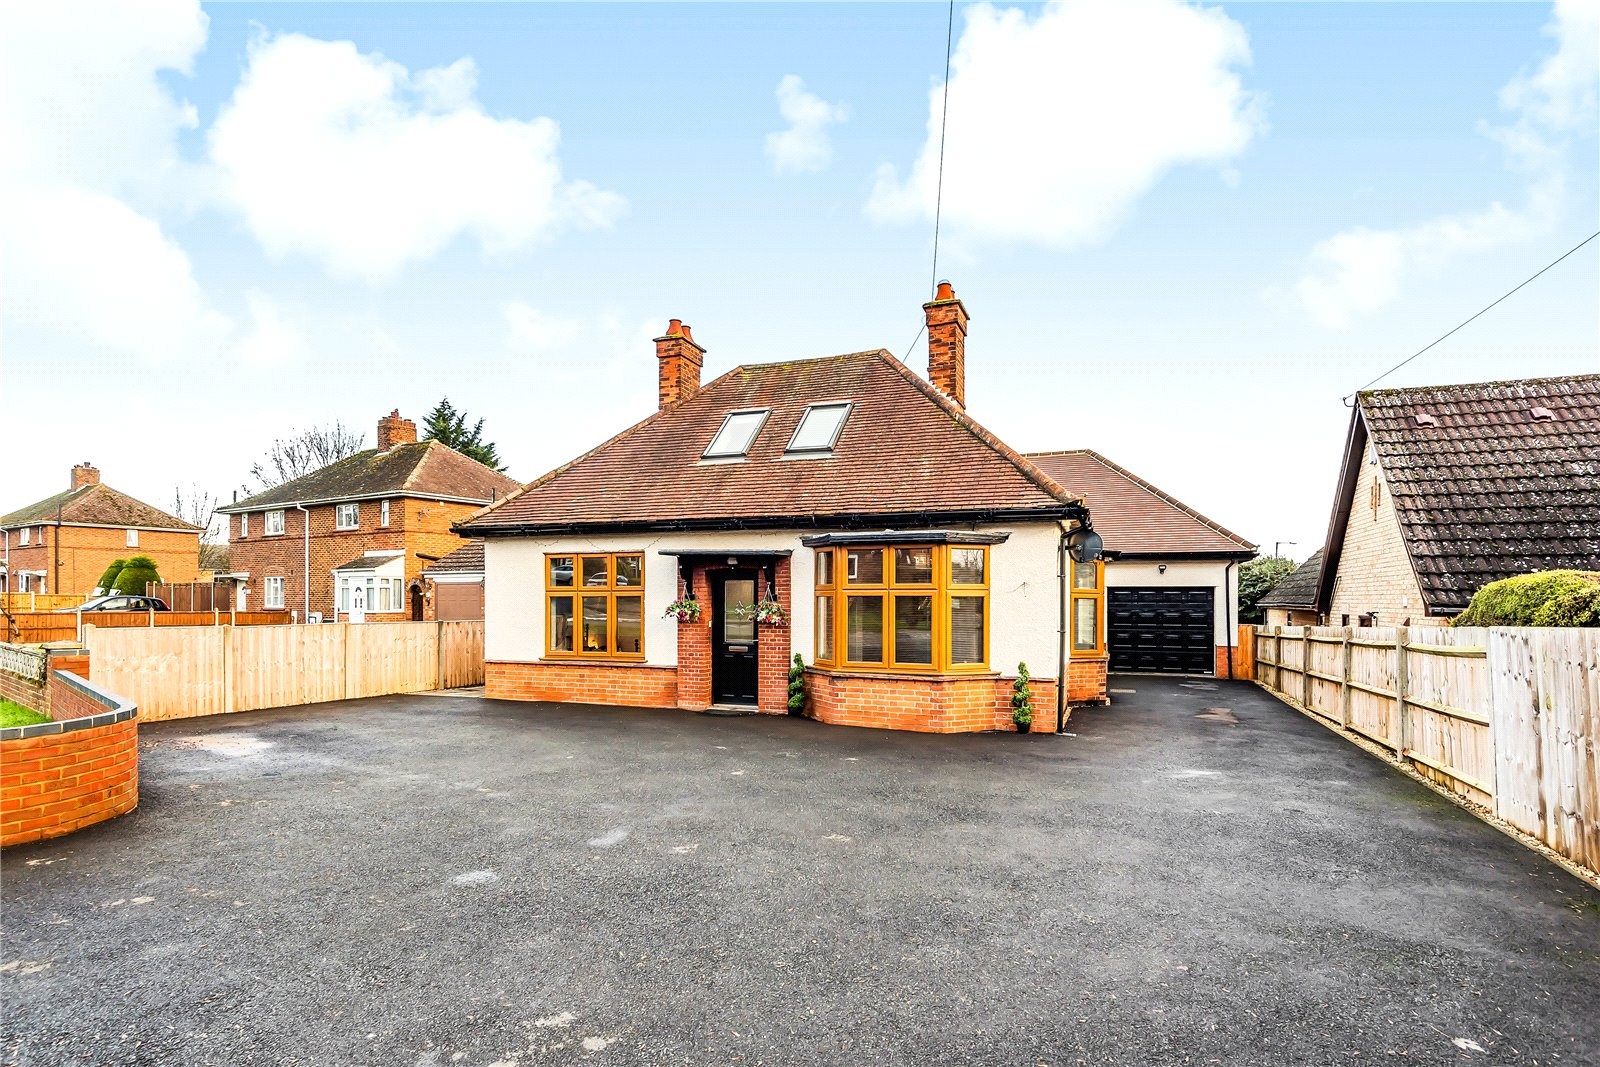 4 bed house for sale in Eaton Ford, PE19 7BJ, PE19